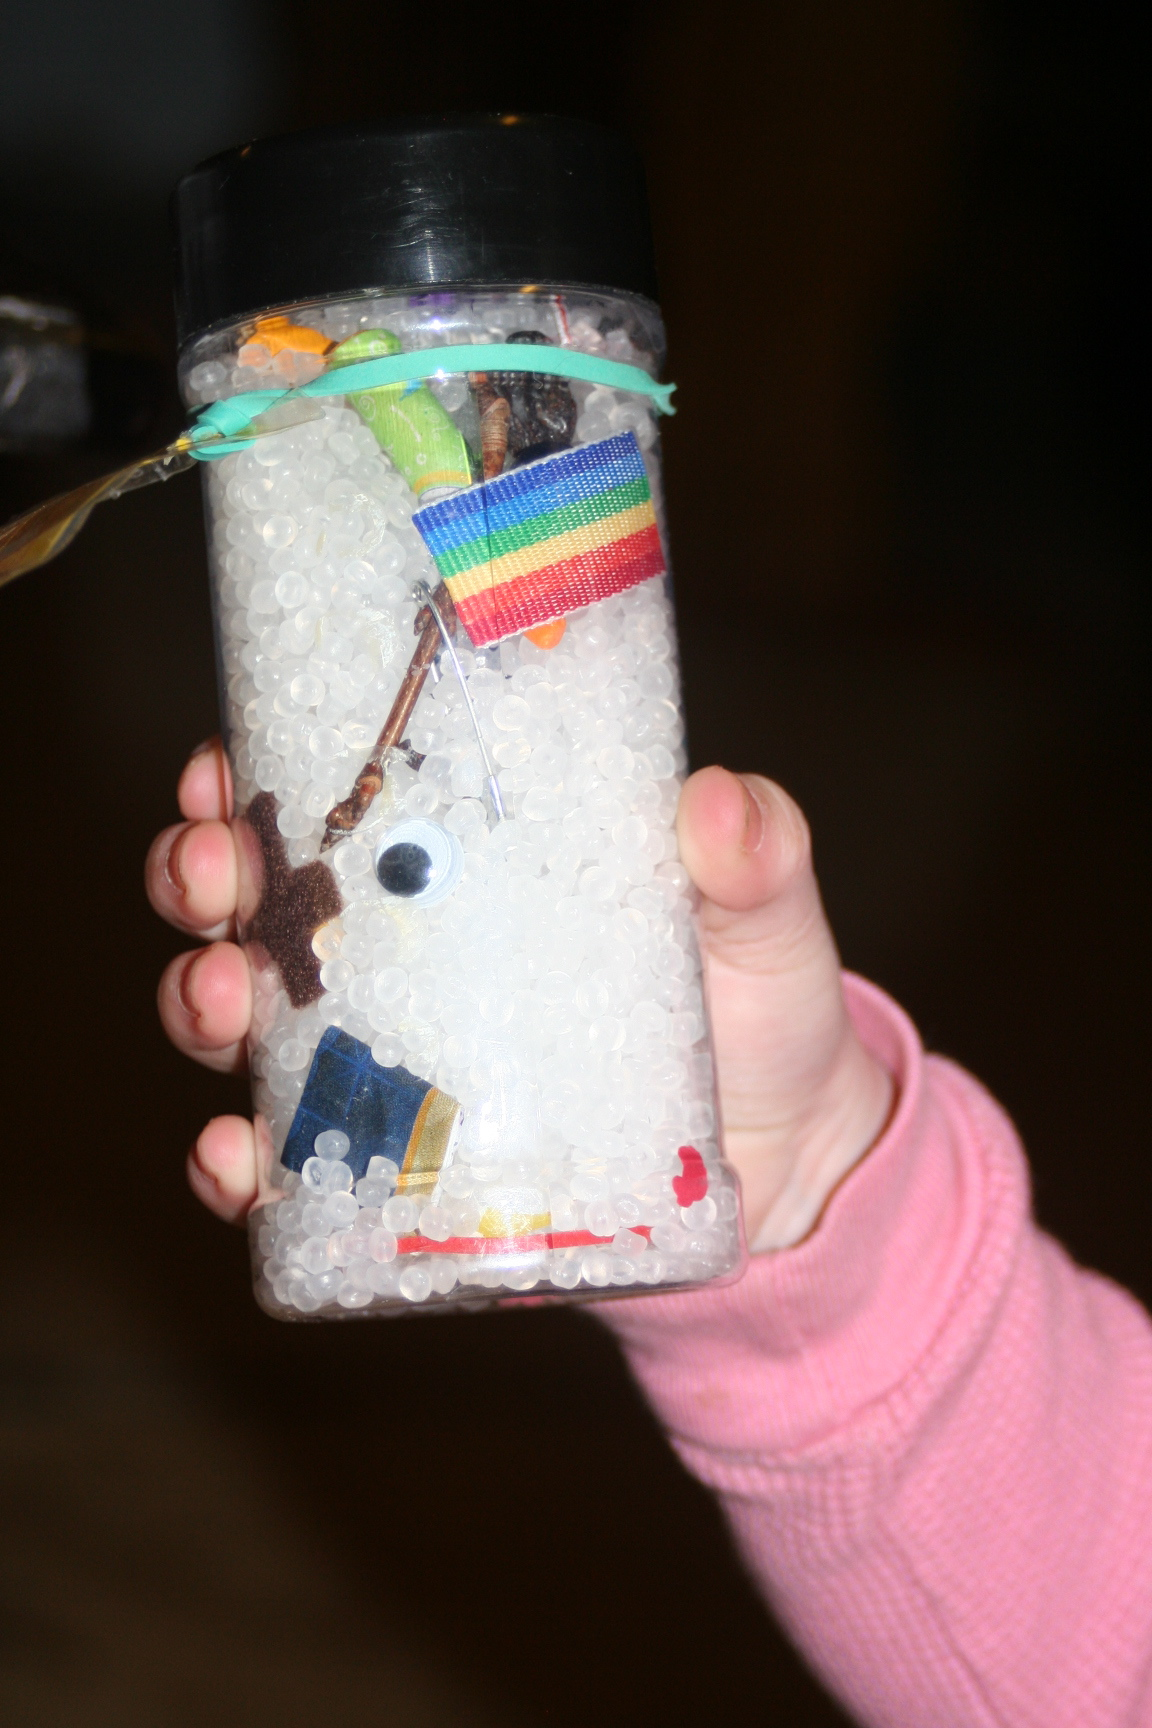 Vbs kids crafts pure and simple life for Spy crafts for kids